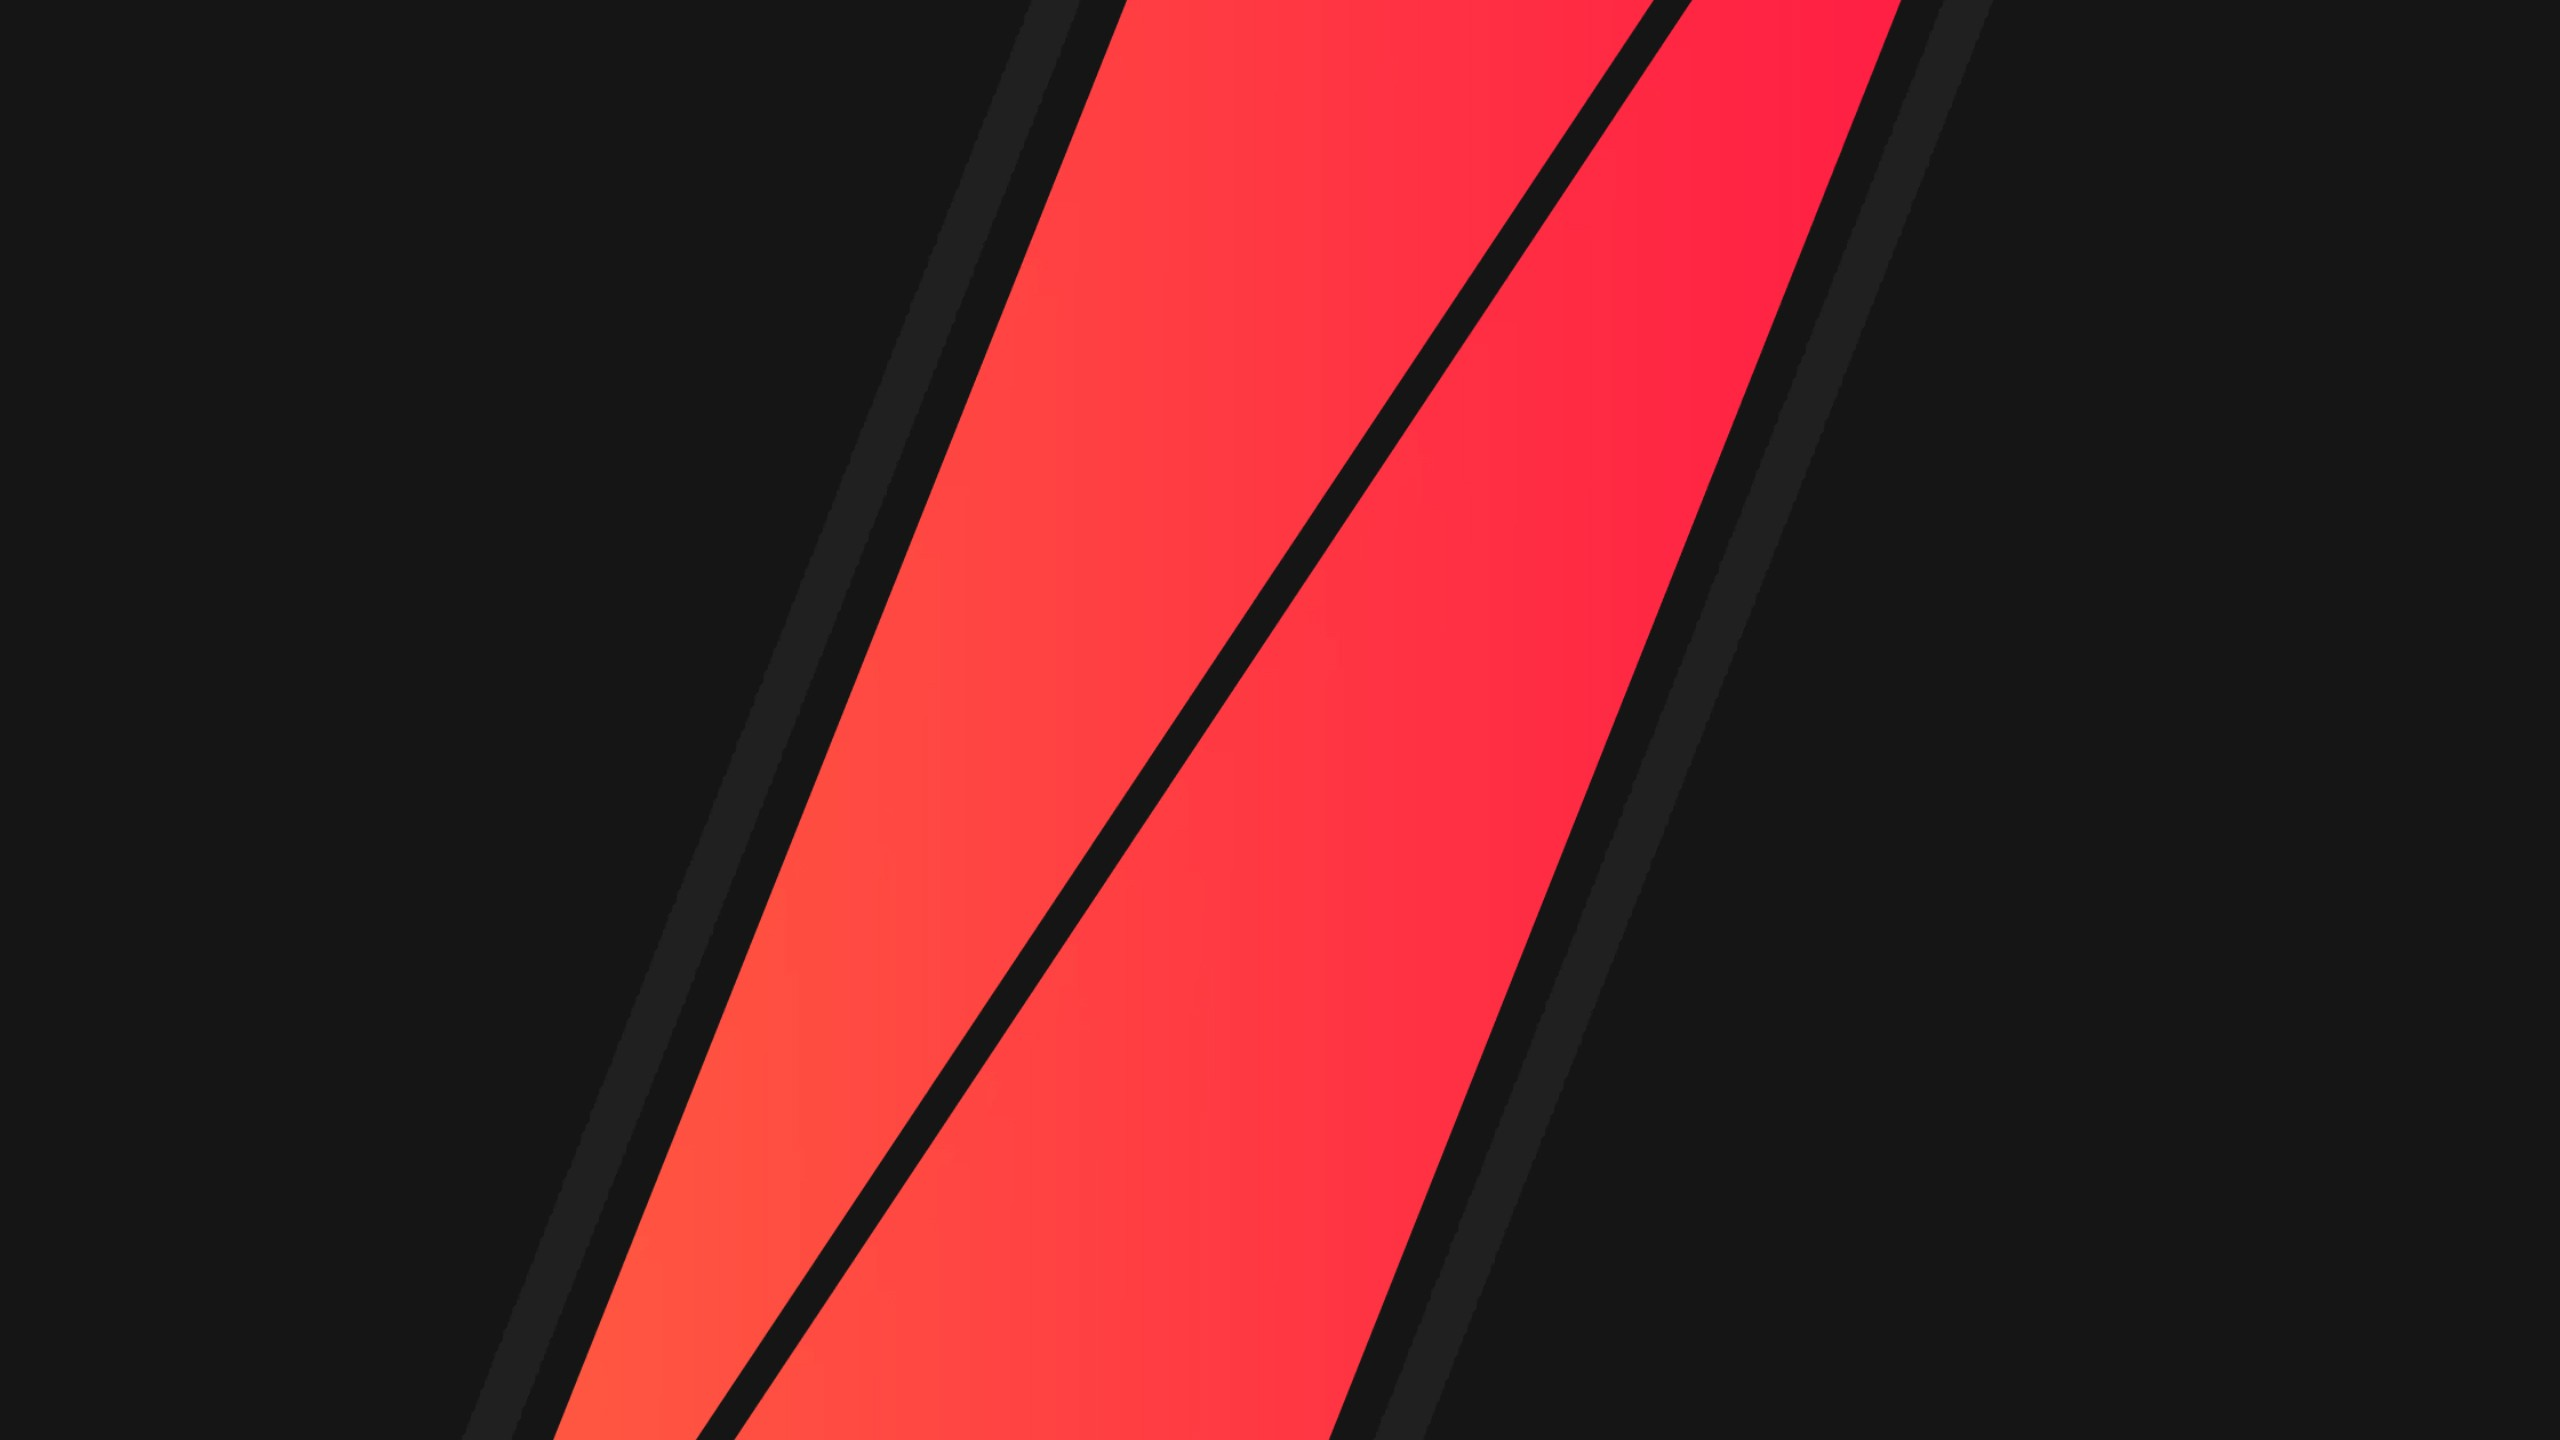 red and black apple wallpapers